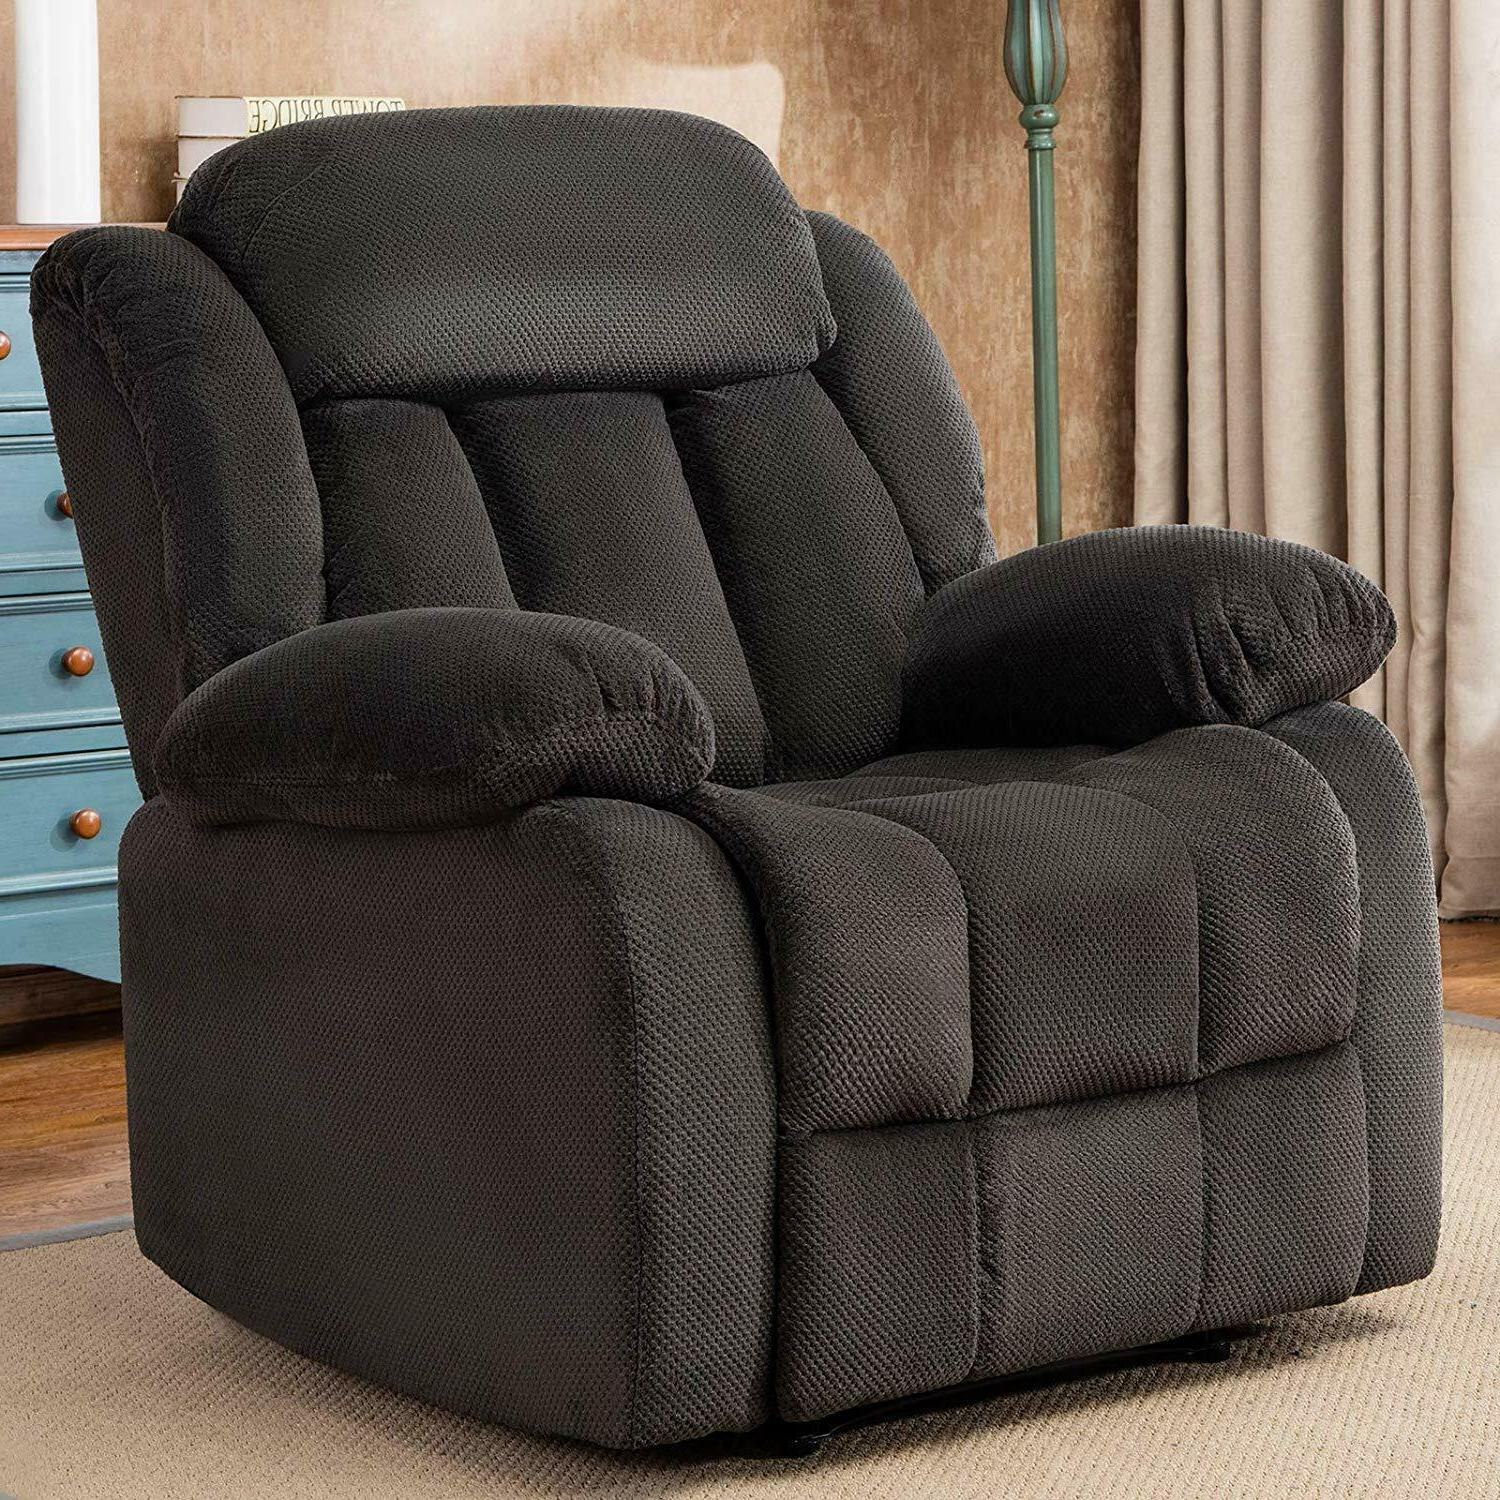 Manual Recliner Chair Living Room Lounge Oversized Chair Rec